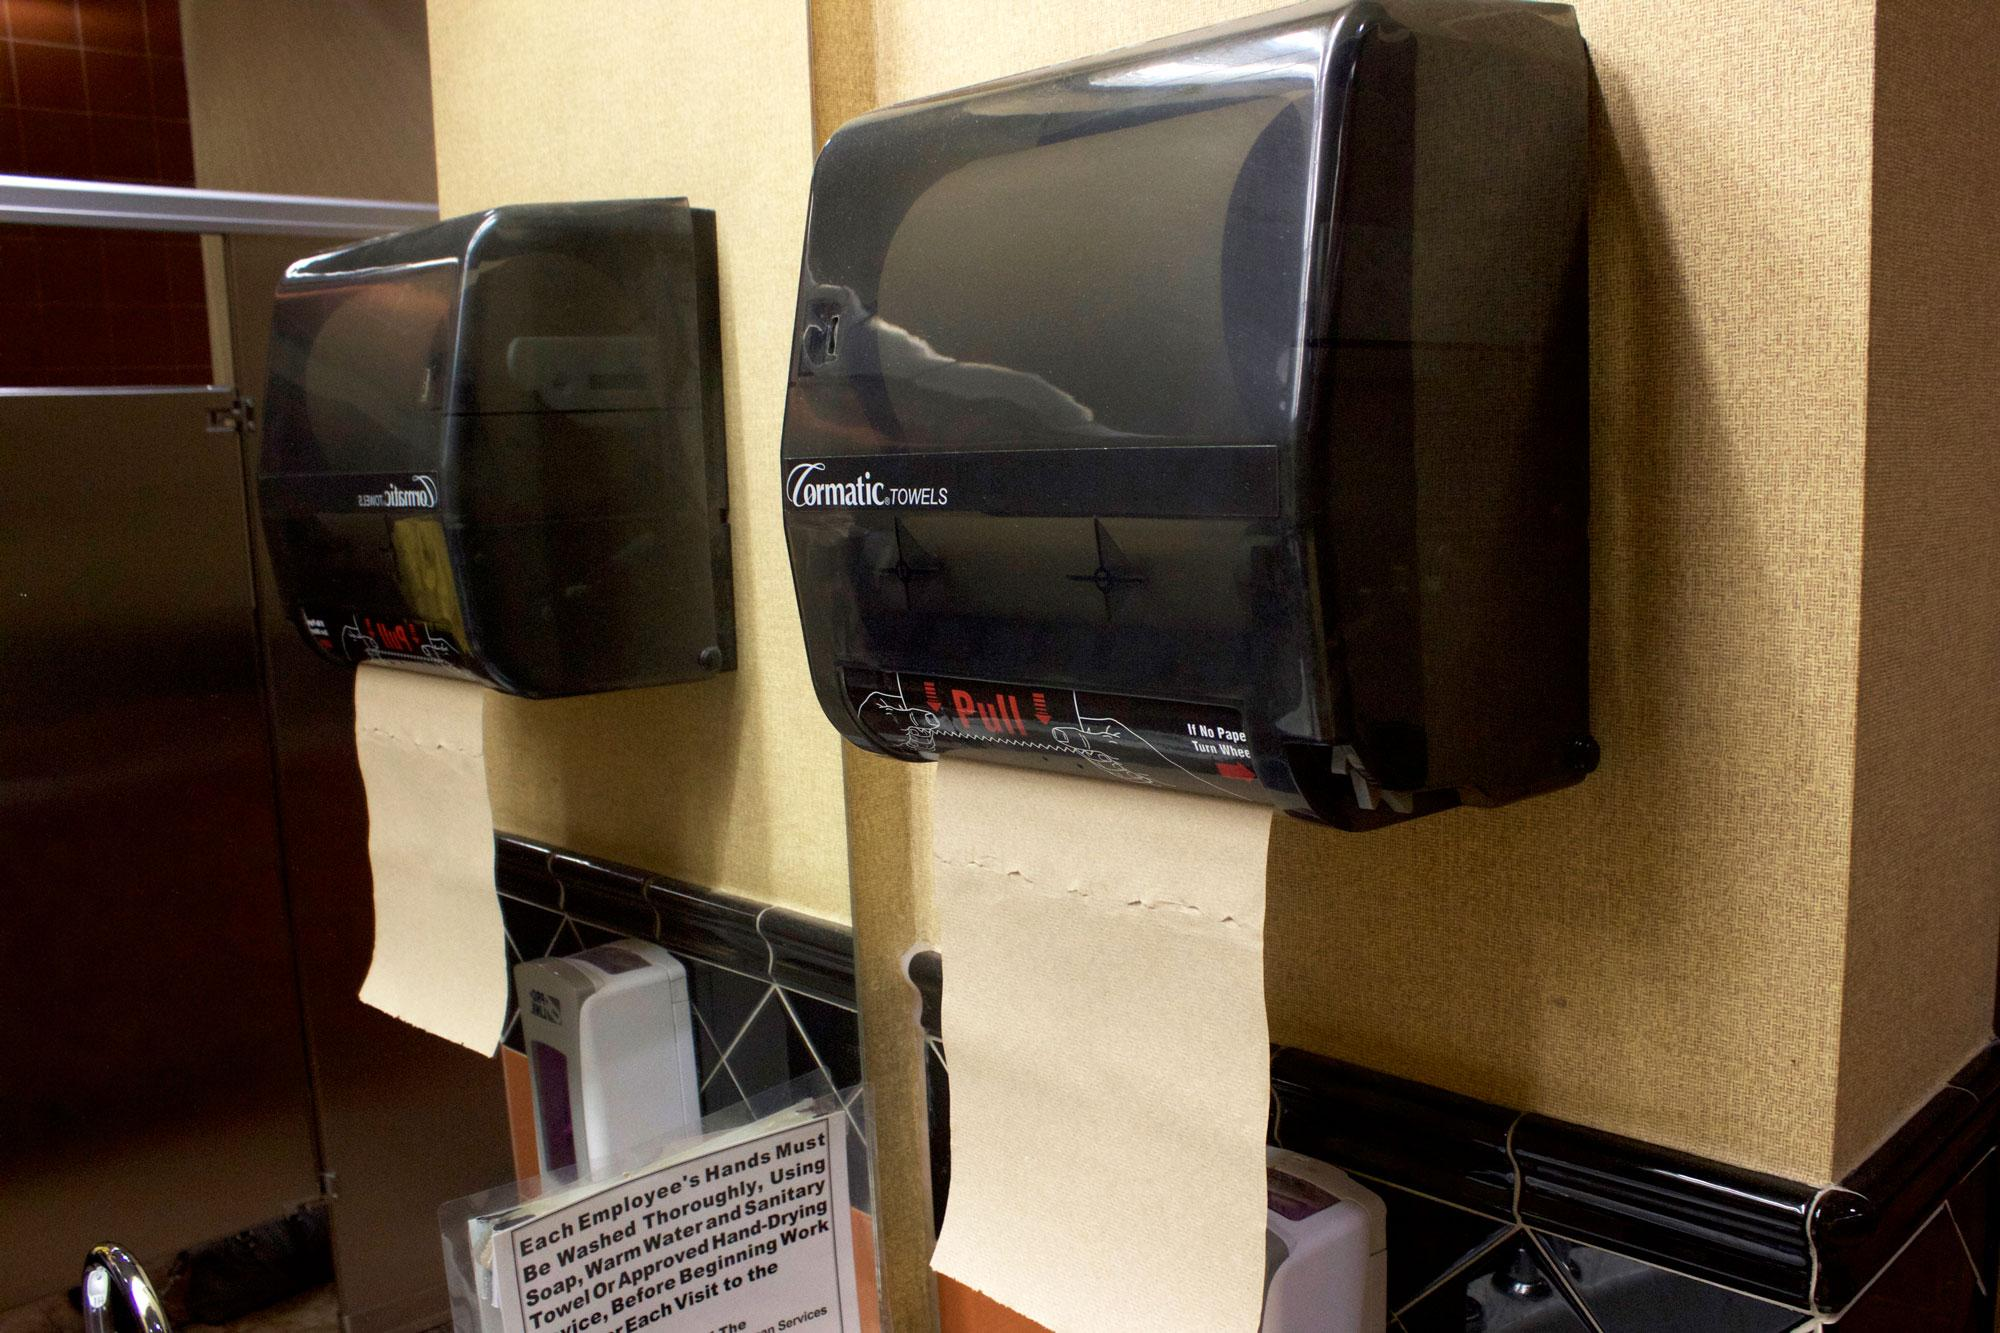 Paper towel dispensers return to Student Union